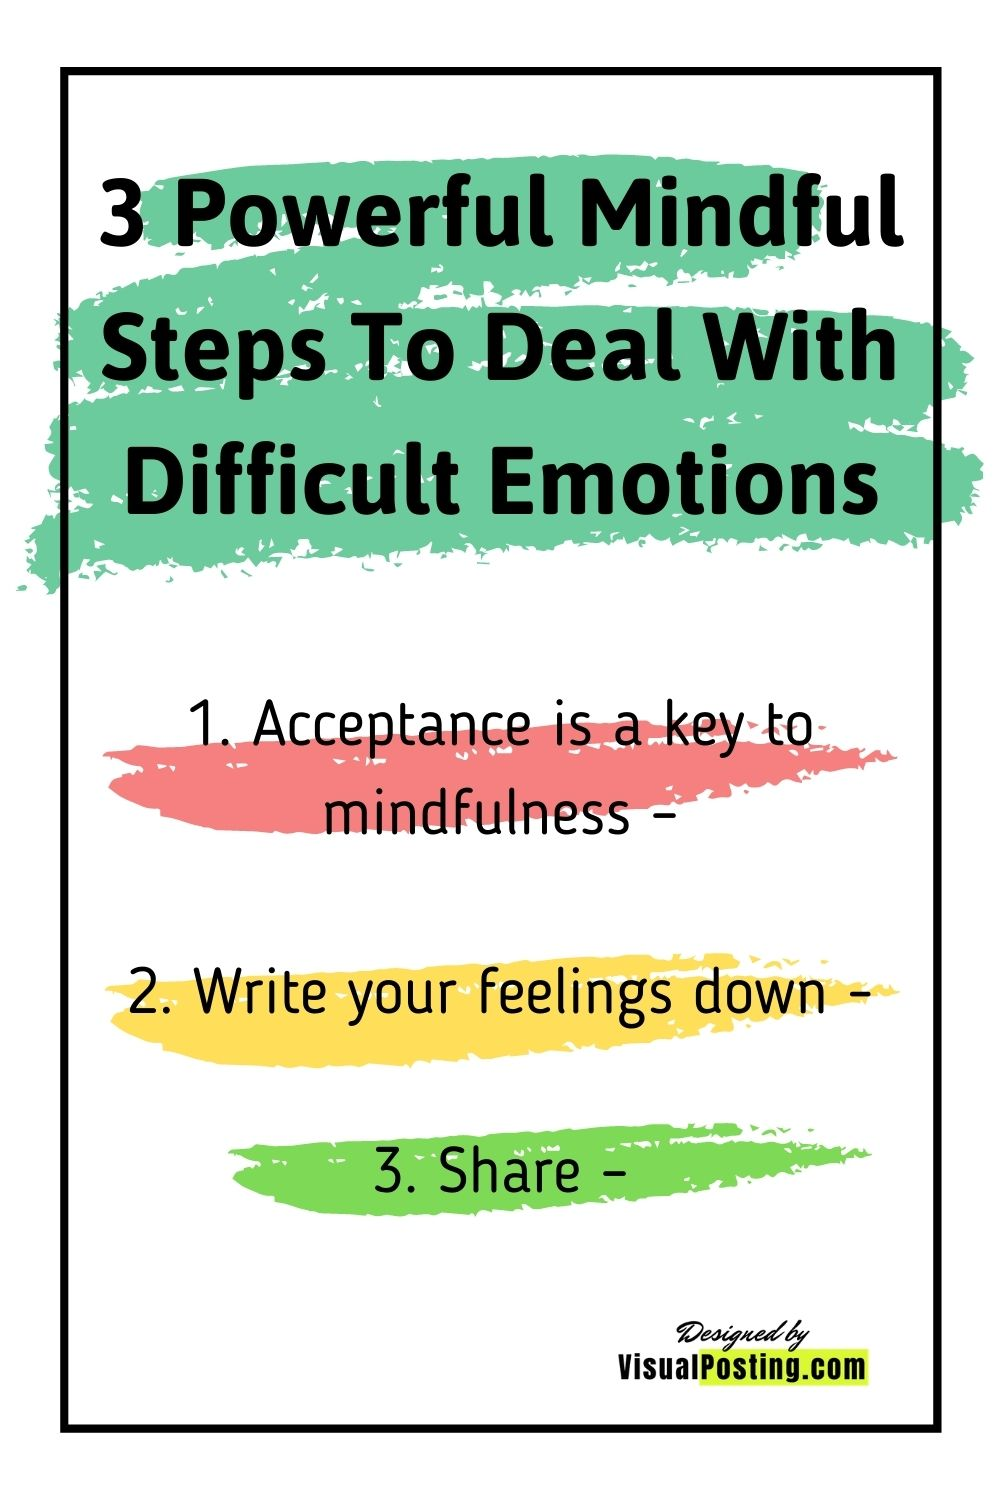 3 powerful mindful steps.jpg